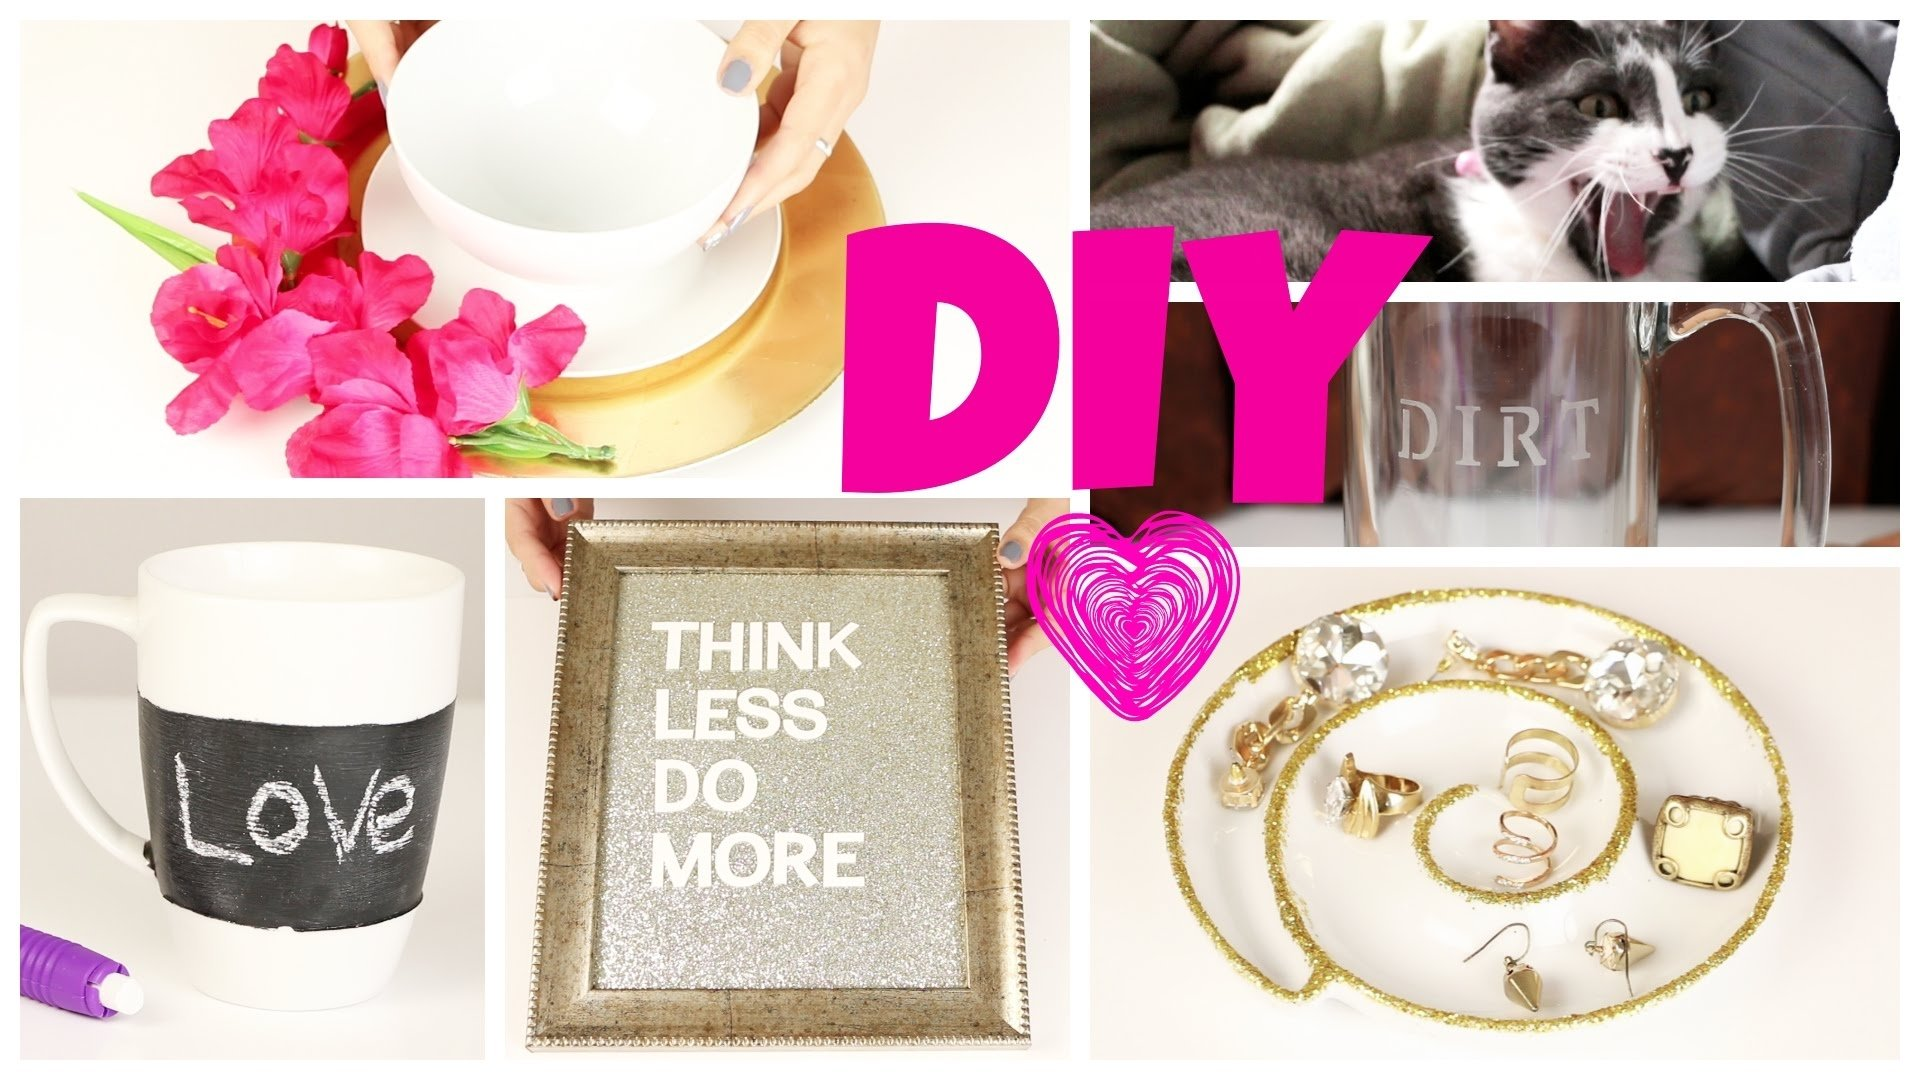 10 Amazing Last Minute Gift Ideas For Her 8 diy gift ideas last minute diy gift ideas for him her holiday 2